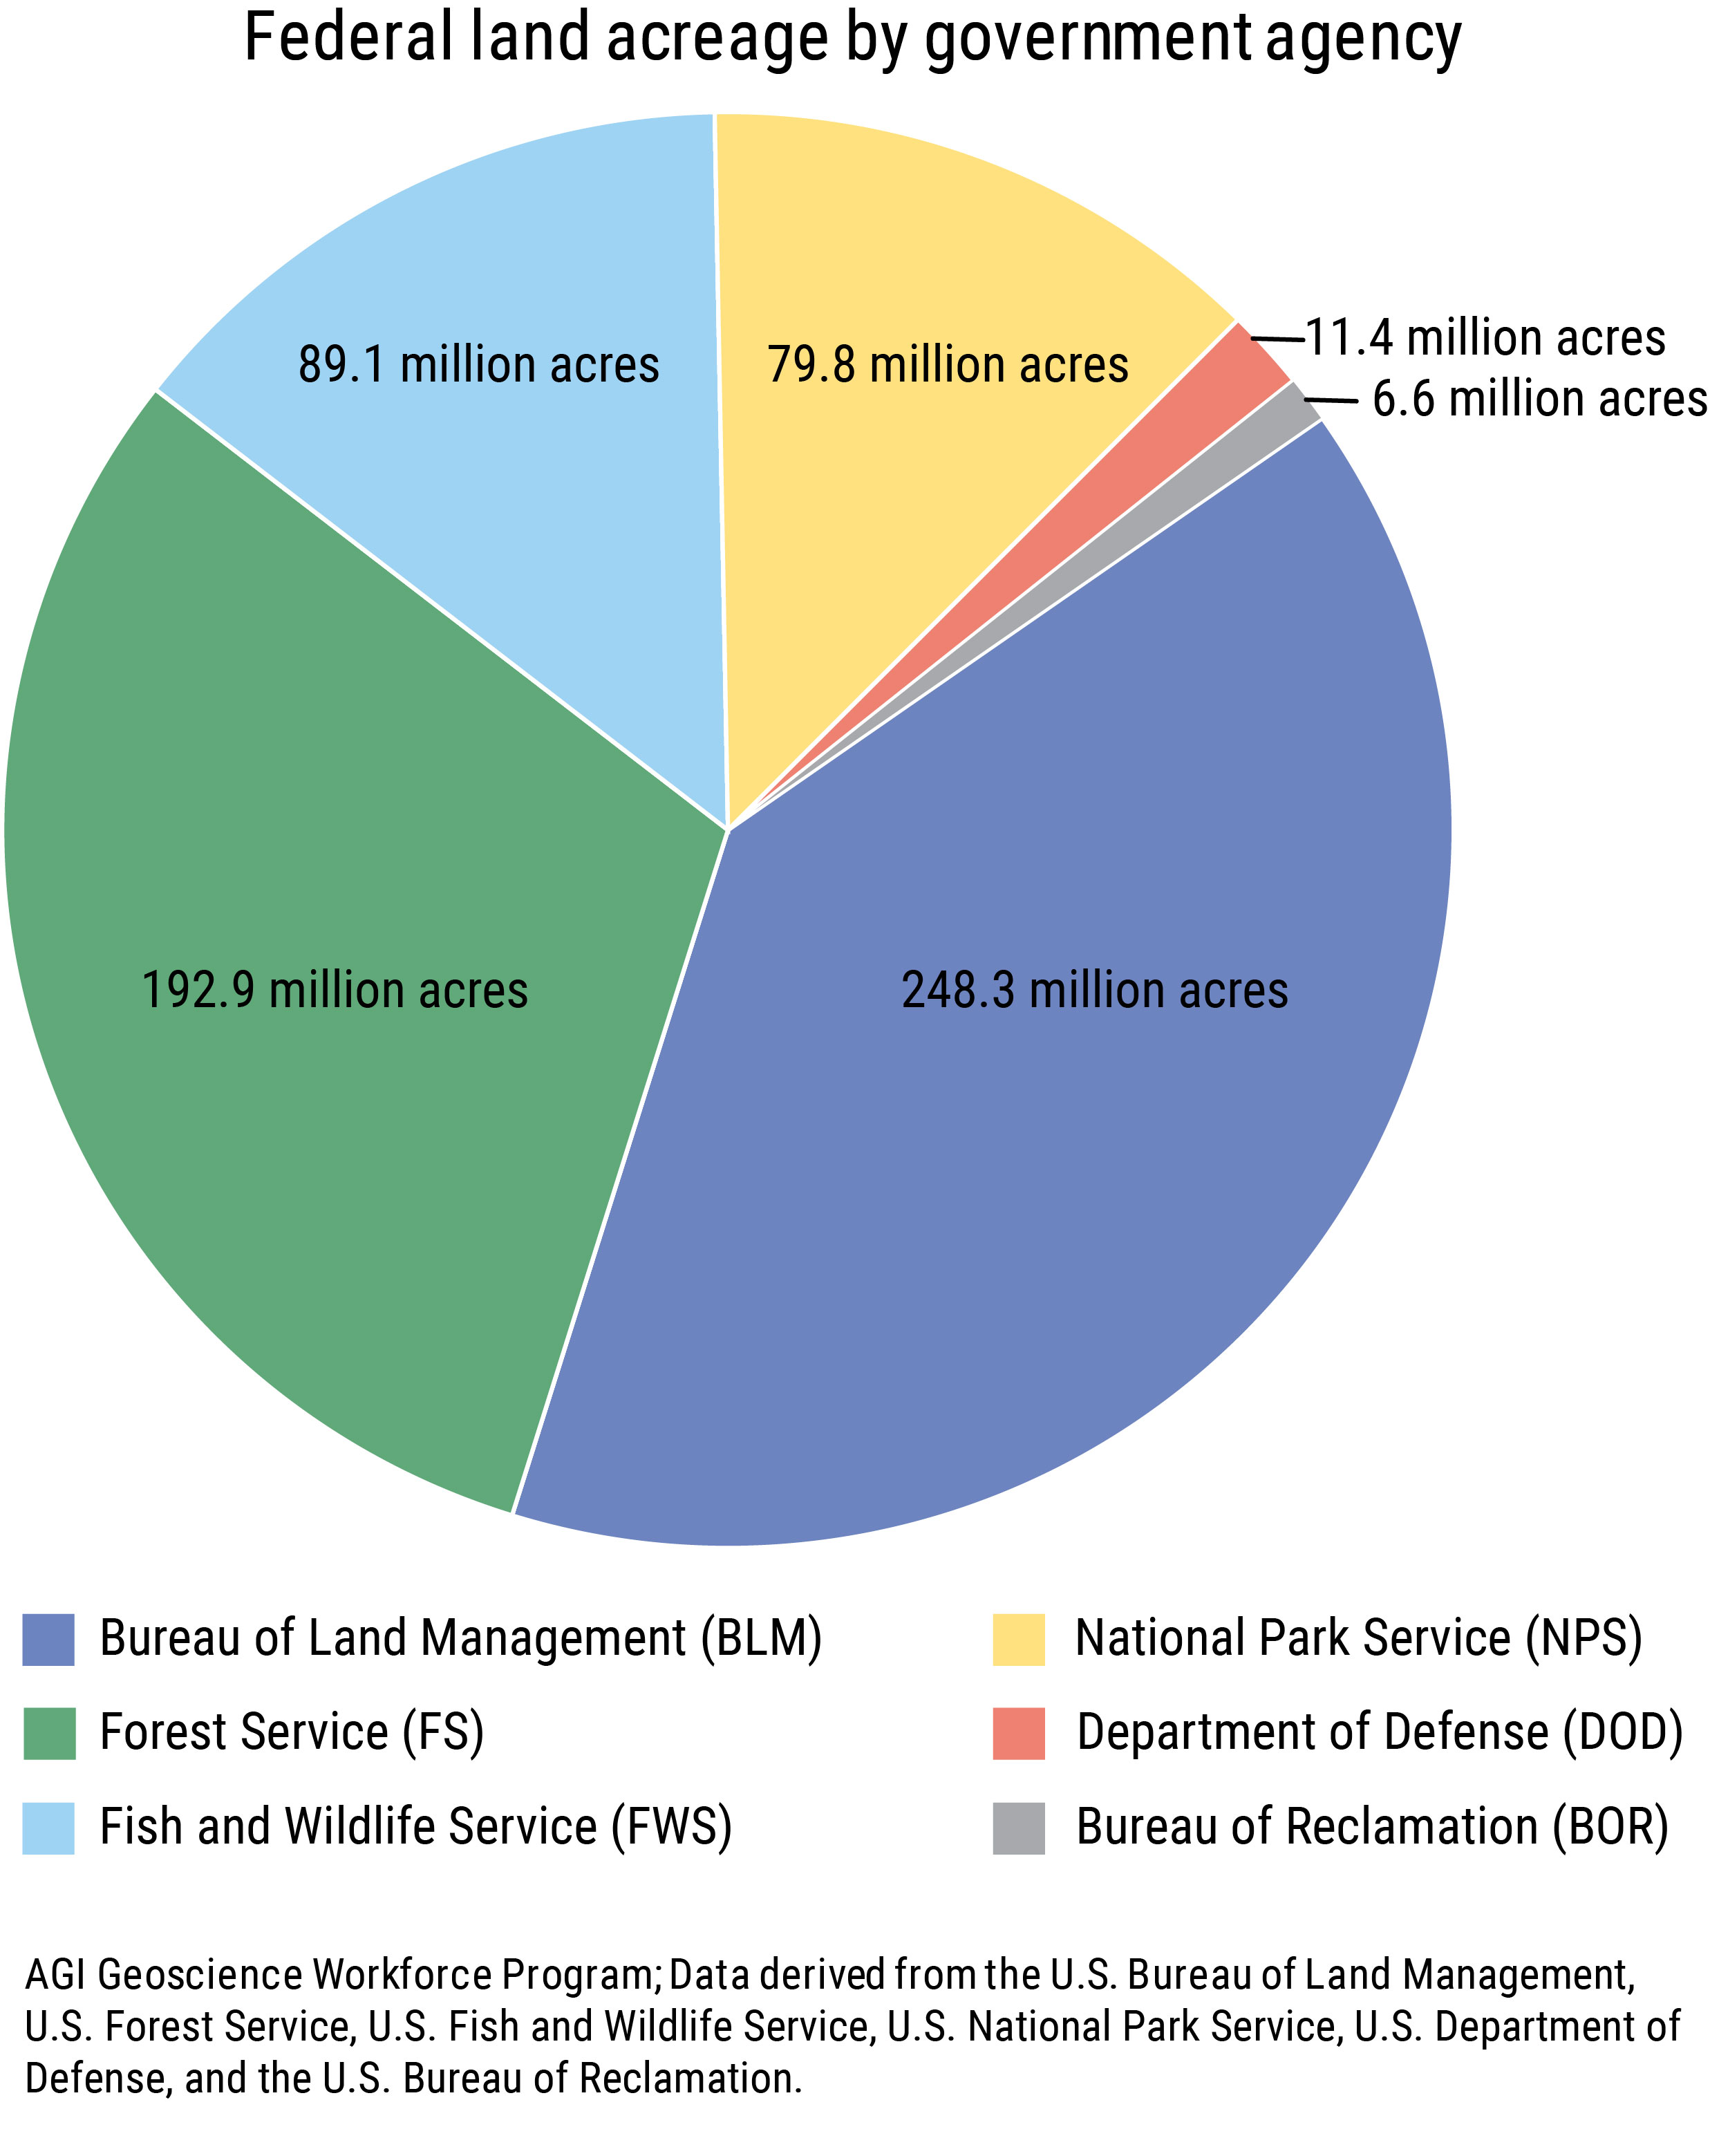 Geoscience Currents, Data Brief 2019-006. Chart 1: Federal land acreage by goverment agency (credit: AGI Geoscience Workforce Program)